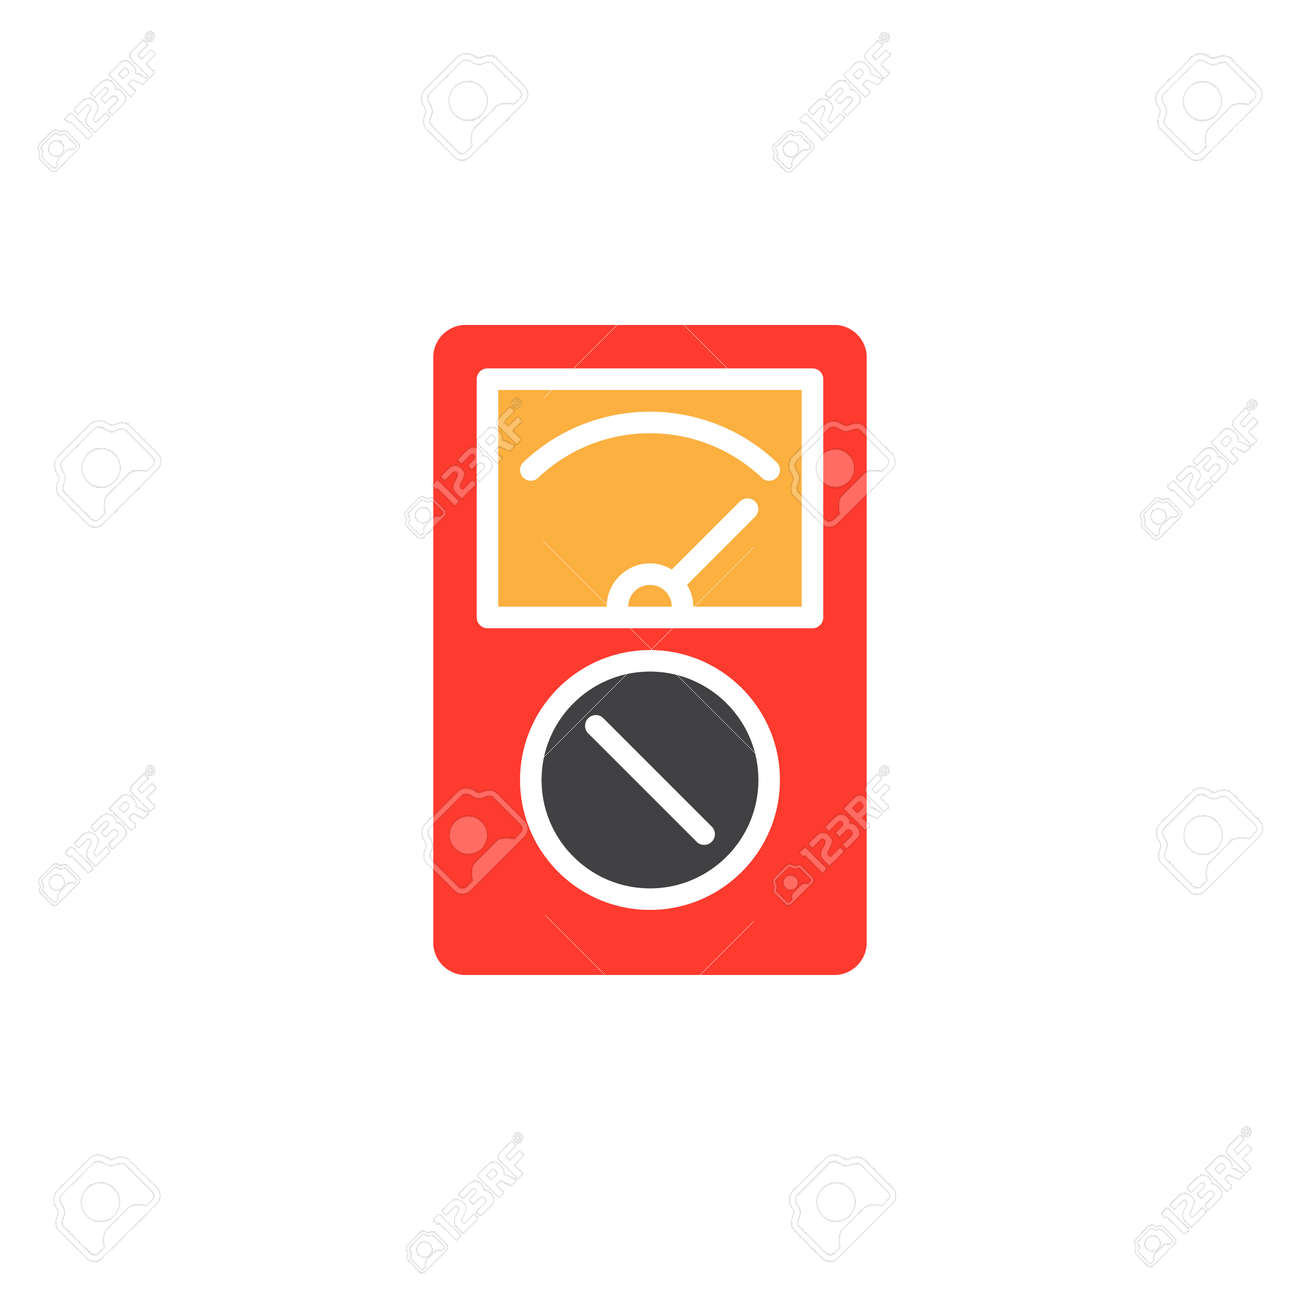 Analog Multimeter Colorful Vector Icon Filled Flat Sign Solid